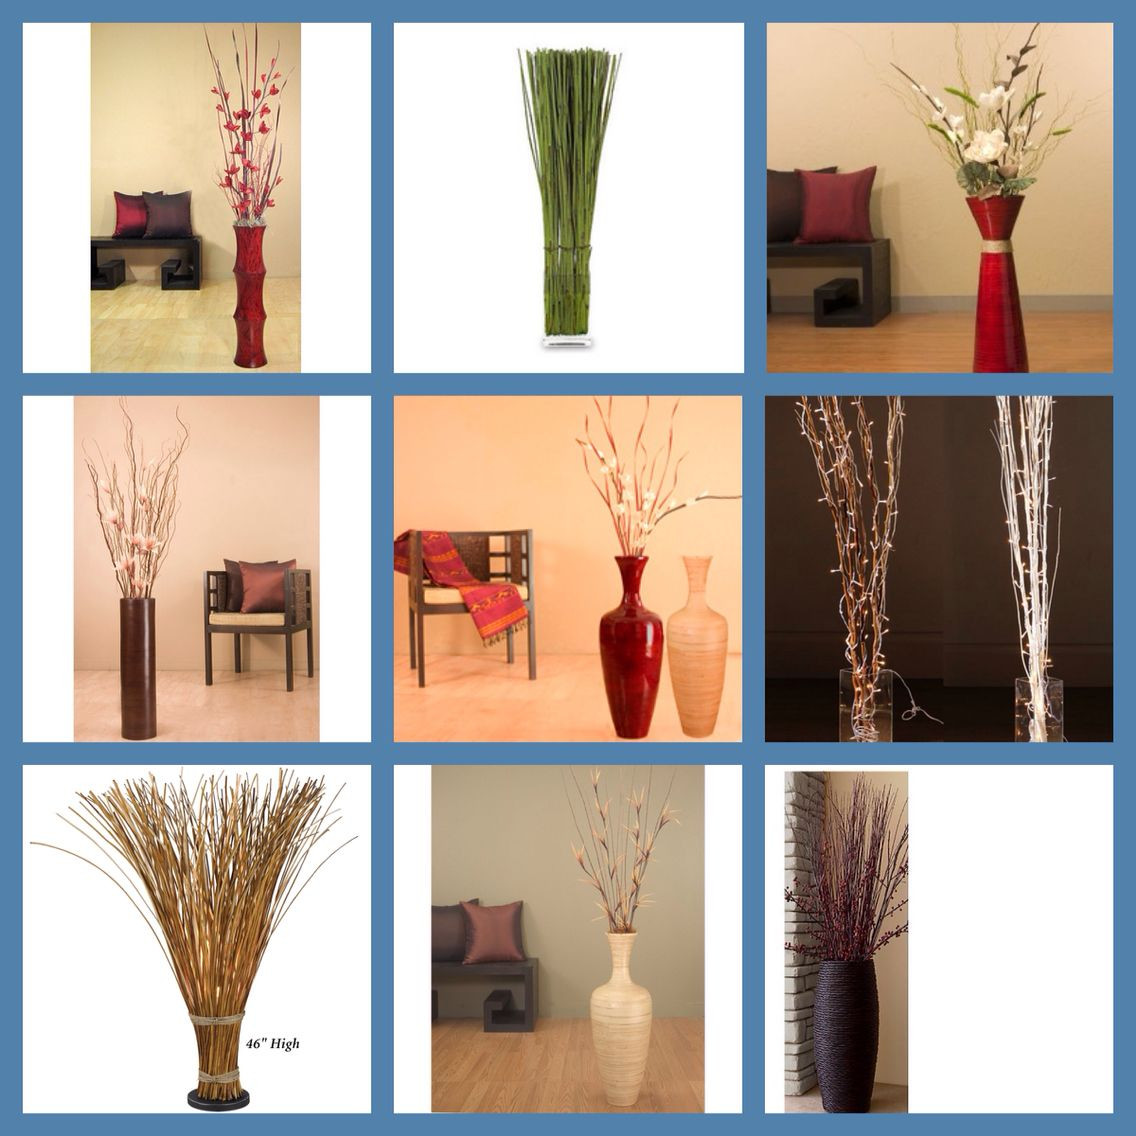 Large Indoor Floor Vases Of Reeds Tall Flowers to Put In the Floor Vase Wish List Pertaining to Reeds Tall Flowers to Put In the Floor Vase the Floor Home Projects